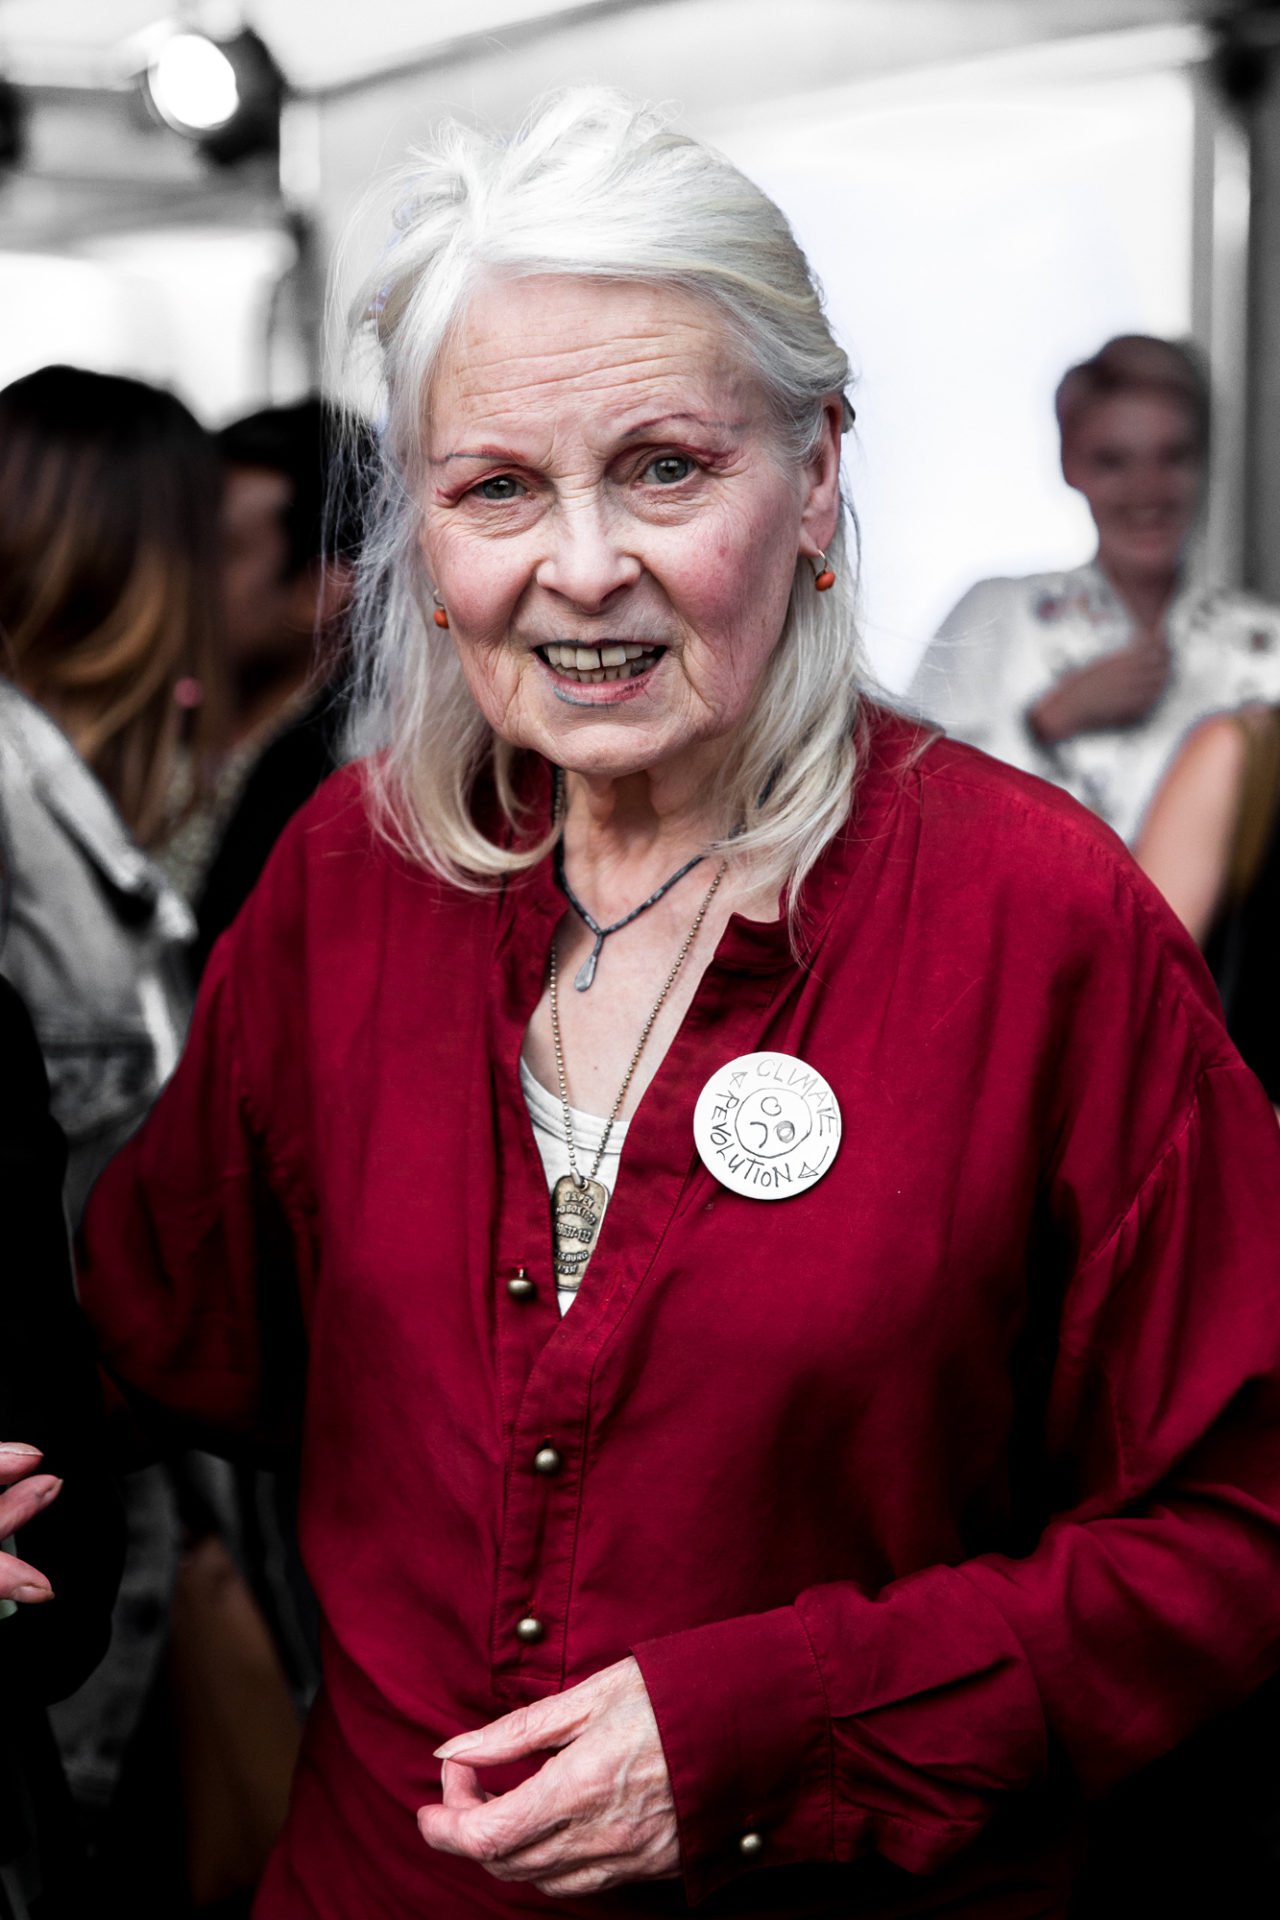 Vivienne Westwood at the Bread & Butter Pre Event in Berlin